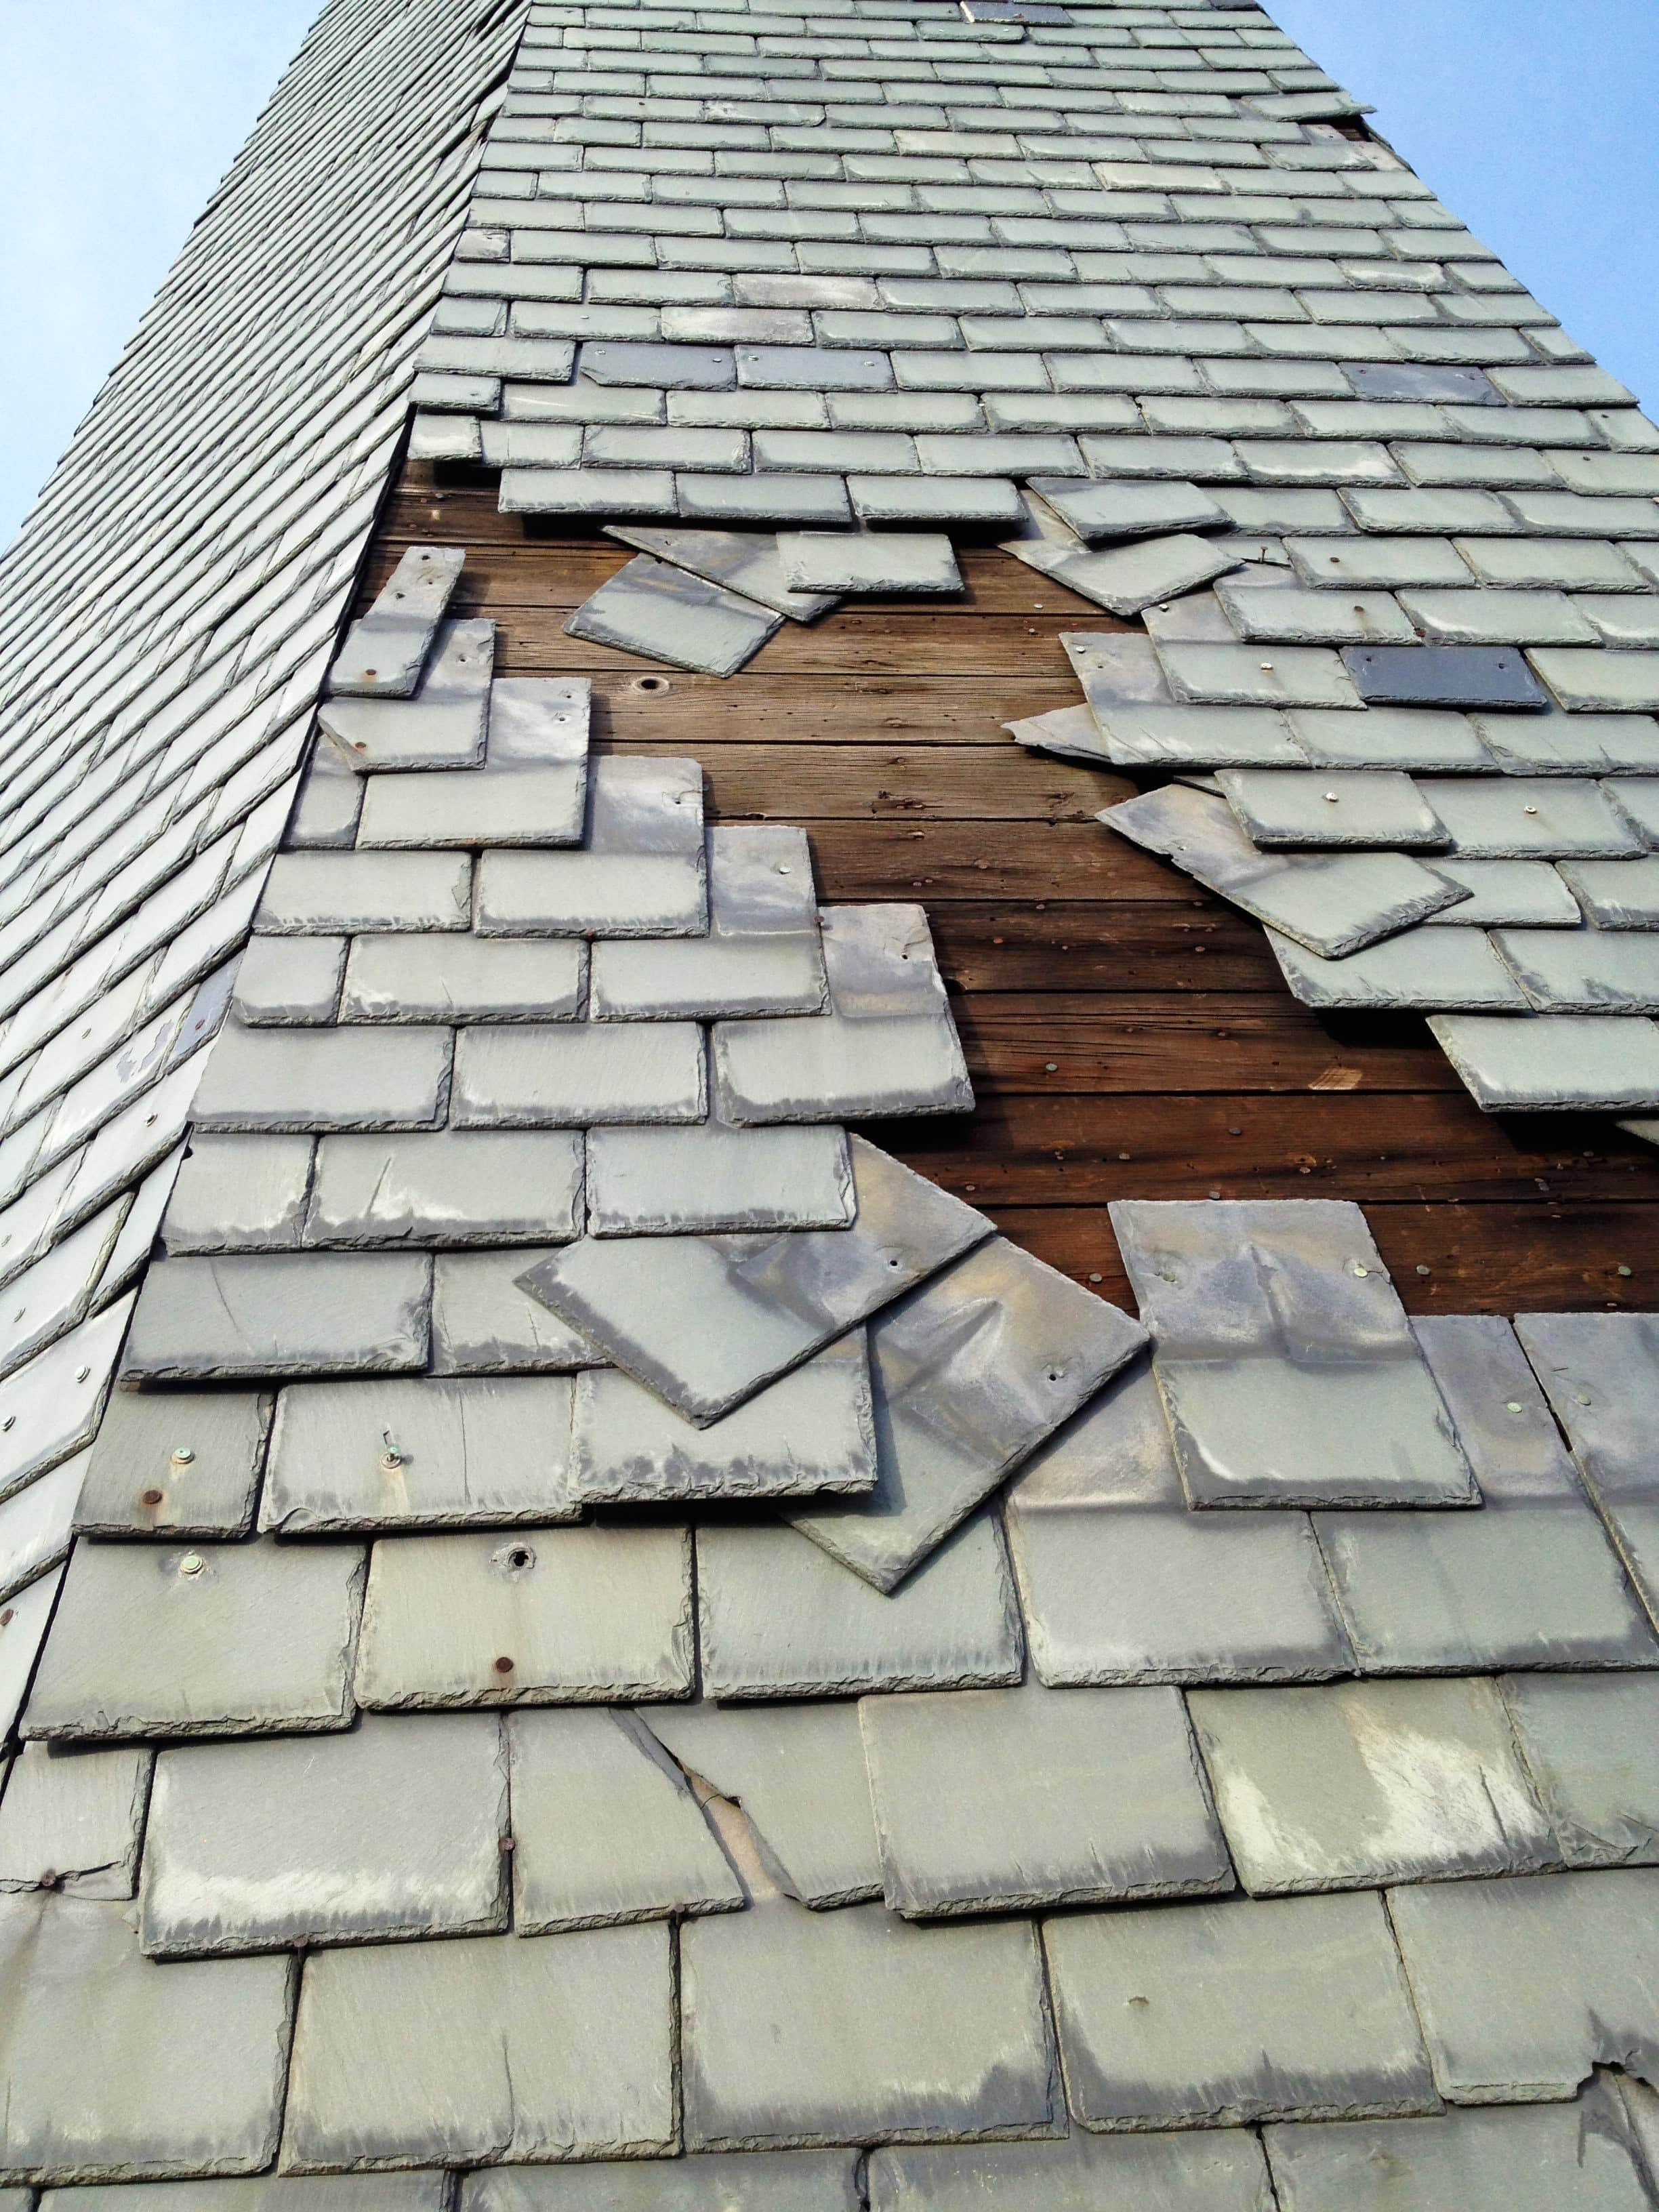 Slate Roof Damage On A Church Steeple Due To High Winds